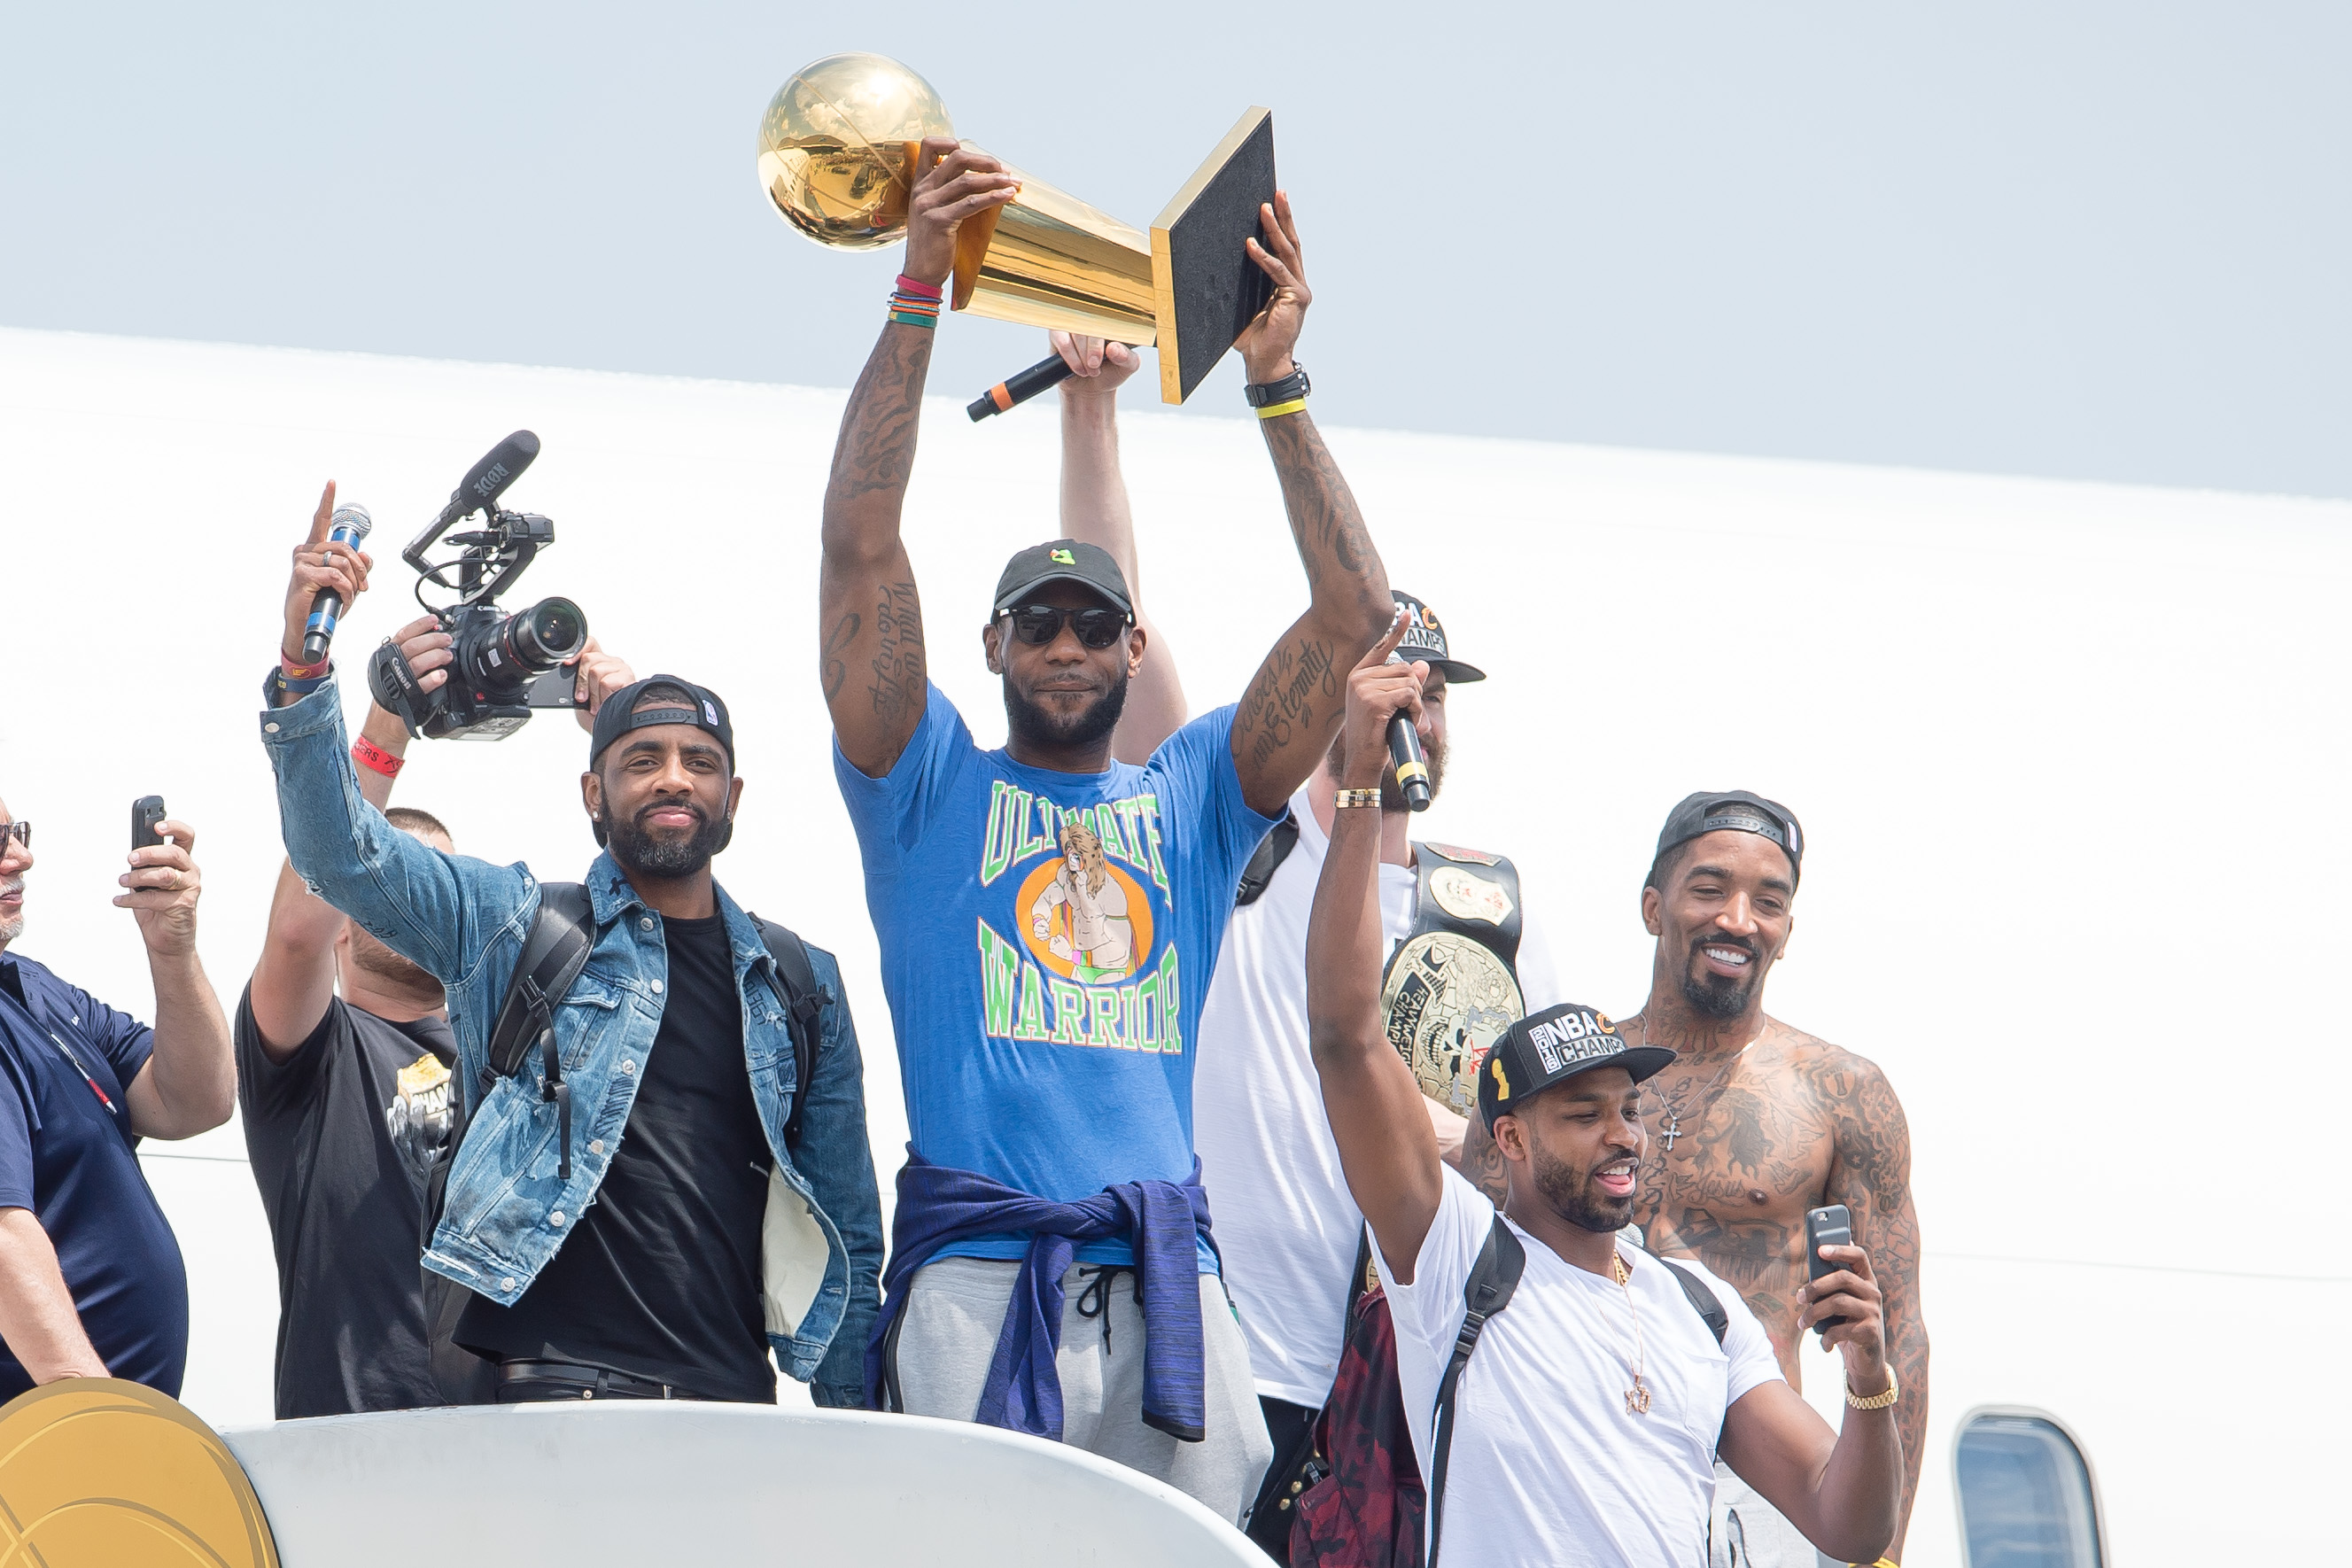 CLEVELAND, OH -  JUNE 20: Kyrie Irving #2, LeBron James #23, Tristan Thompson #13, Kevin Love #0 and J.R. Smith #5 of the Cleveland Cavaliers return to Cleveland after wining the NBA Championships on June 20, 2016 in Cleveland, Ohio. (Photo by Jason Mille